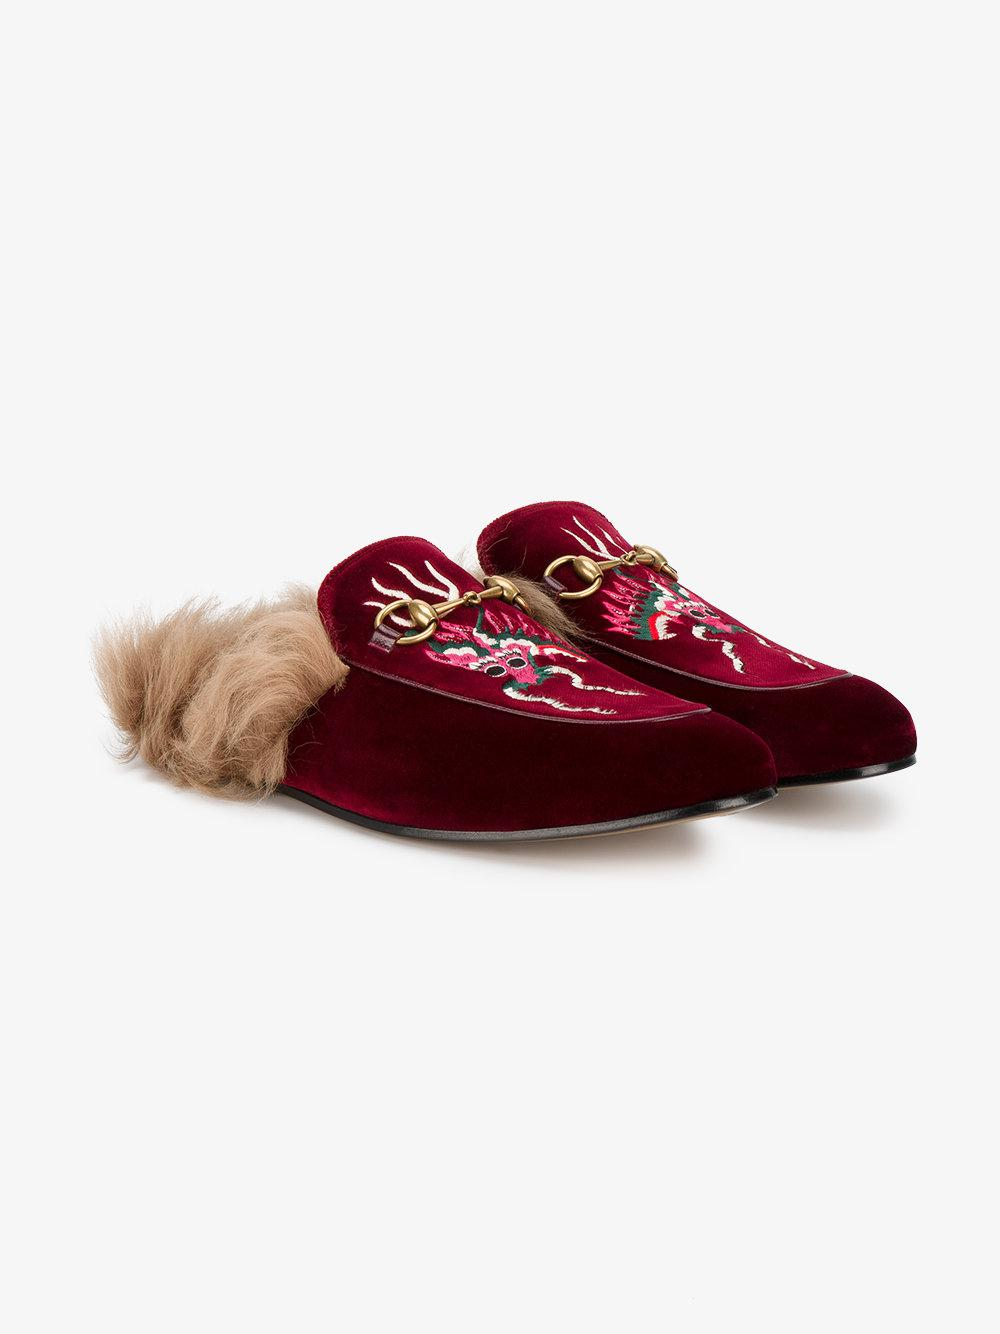 m1fWlI4Dxp Dragon embroidered Princetown slippers hTv2BMG3L